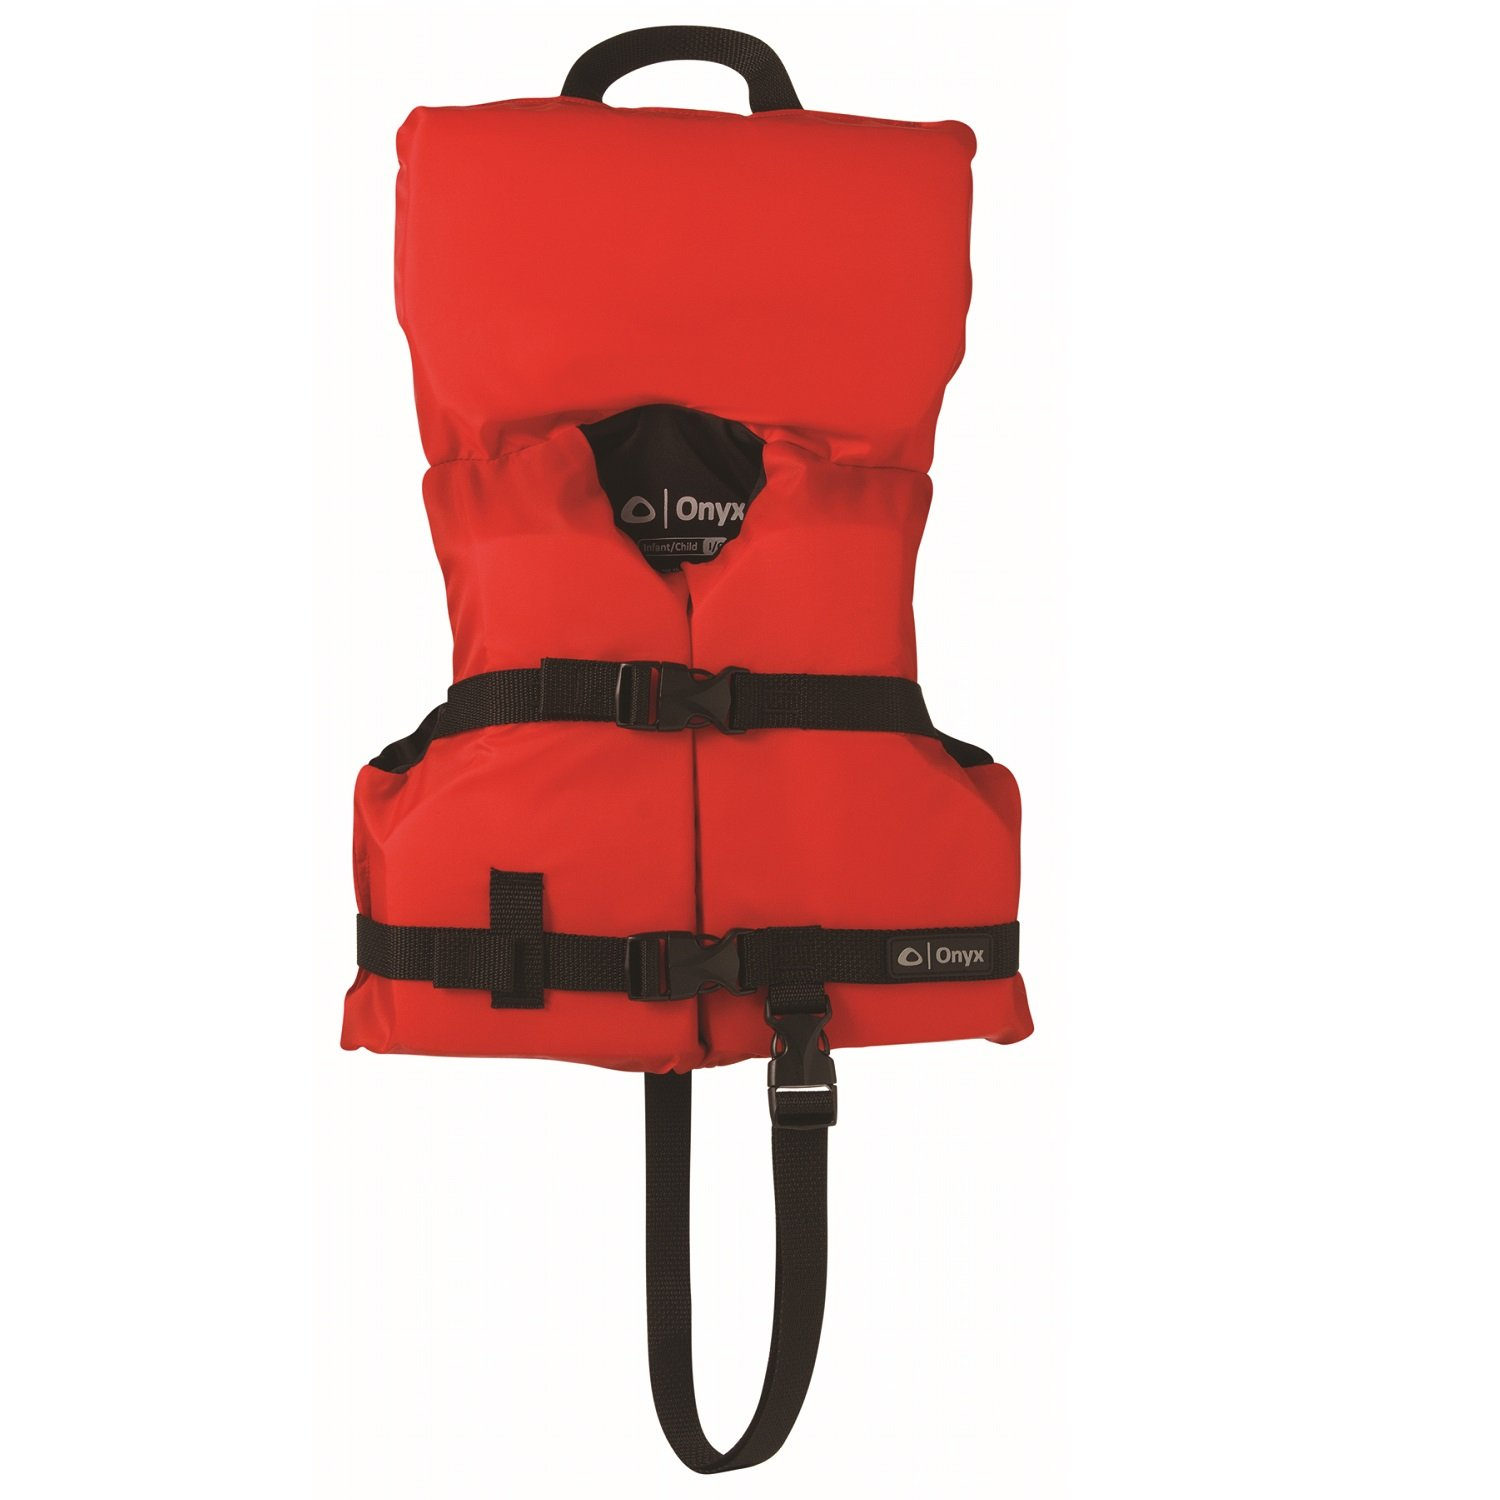 Onyx Infant/Child General Purpose Life Jacket, Red